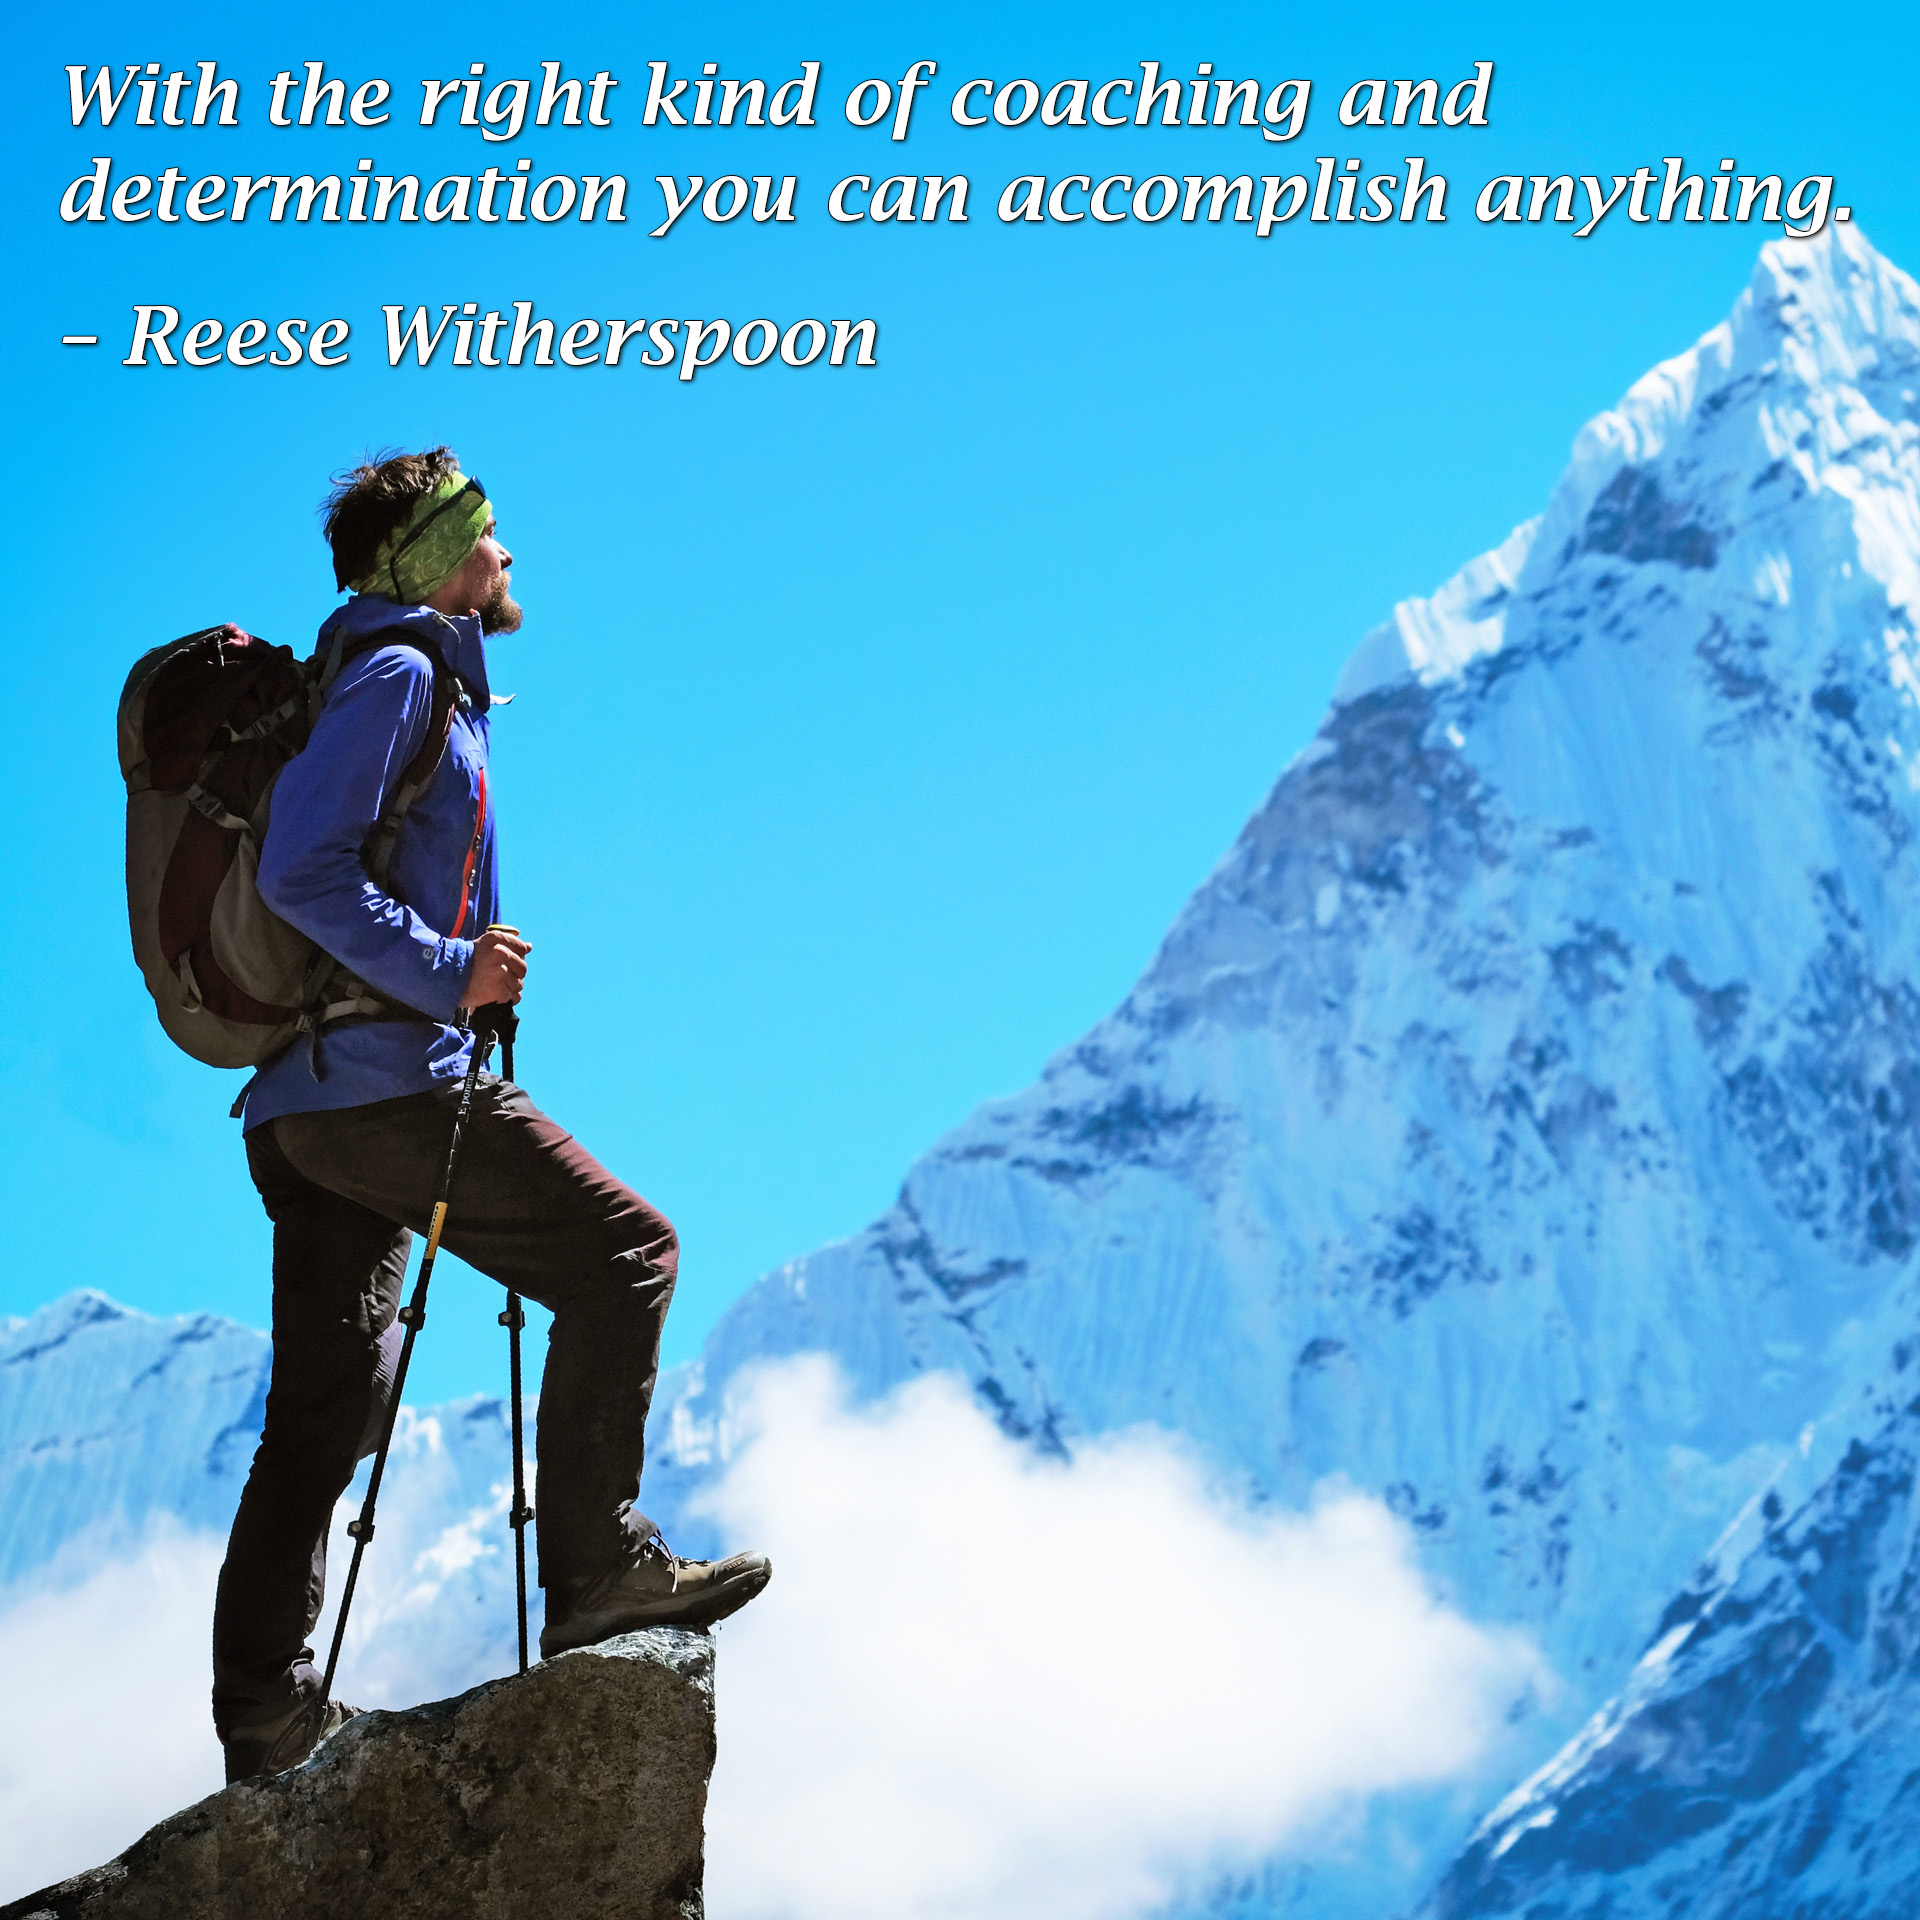 With the right kind of coaching and determination you can accomplish anything - Reese Witherspoon